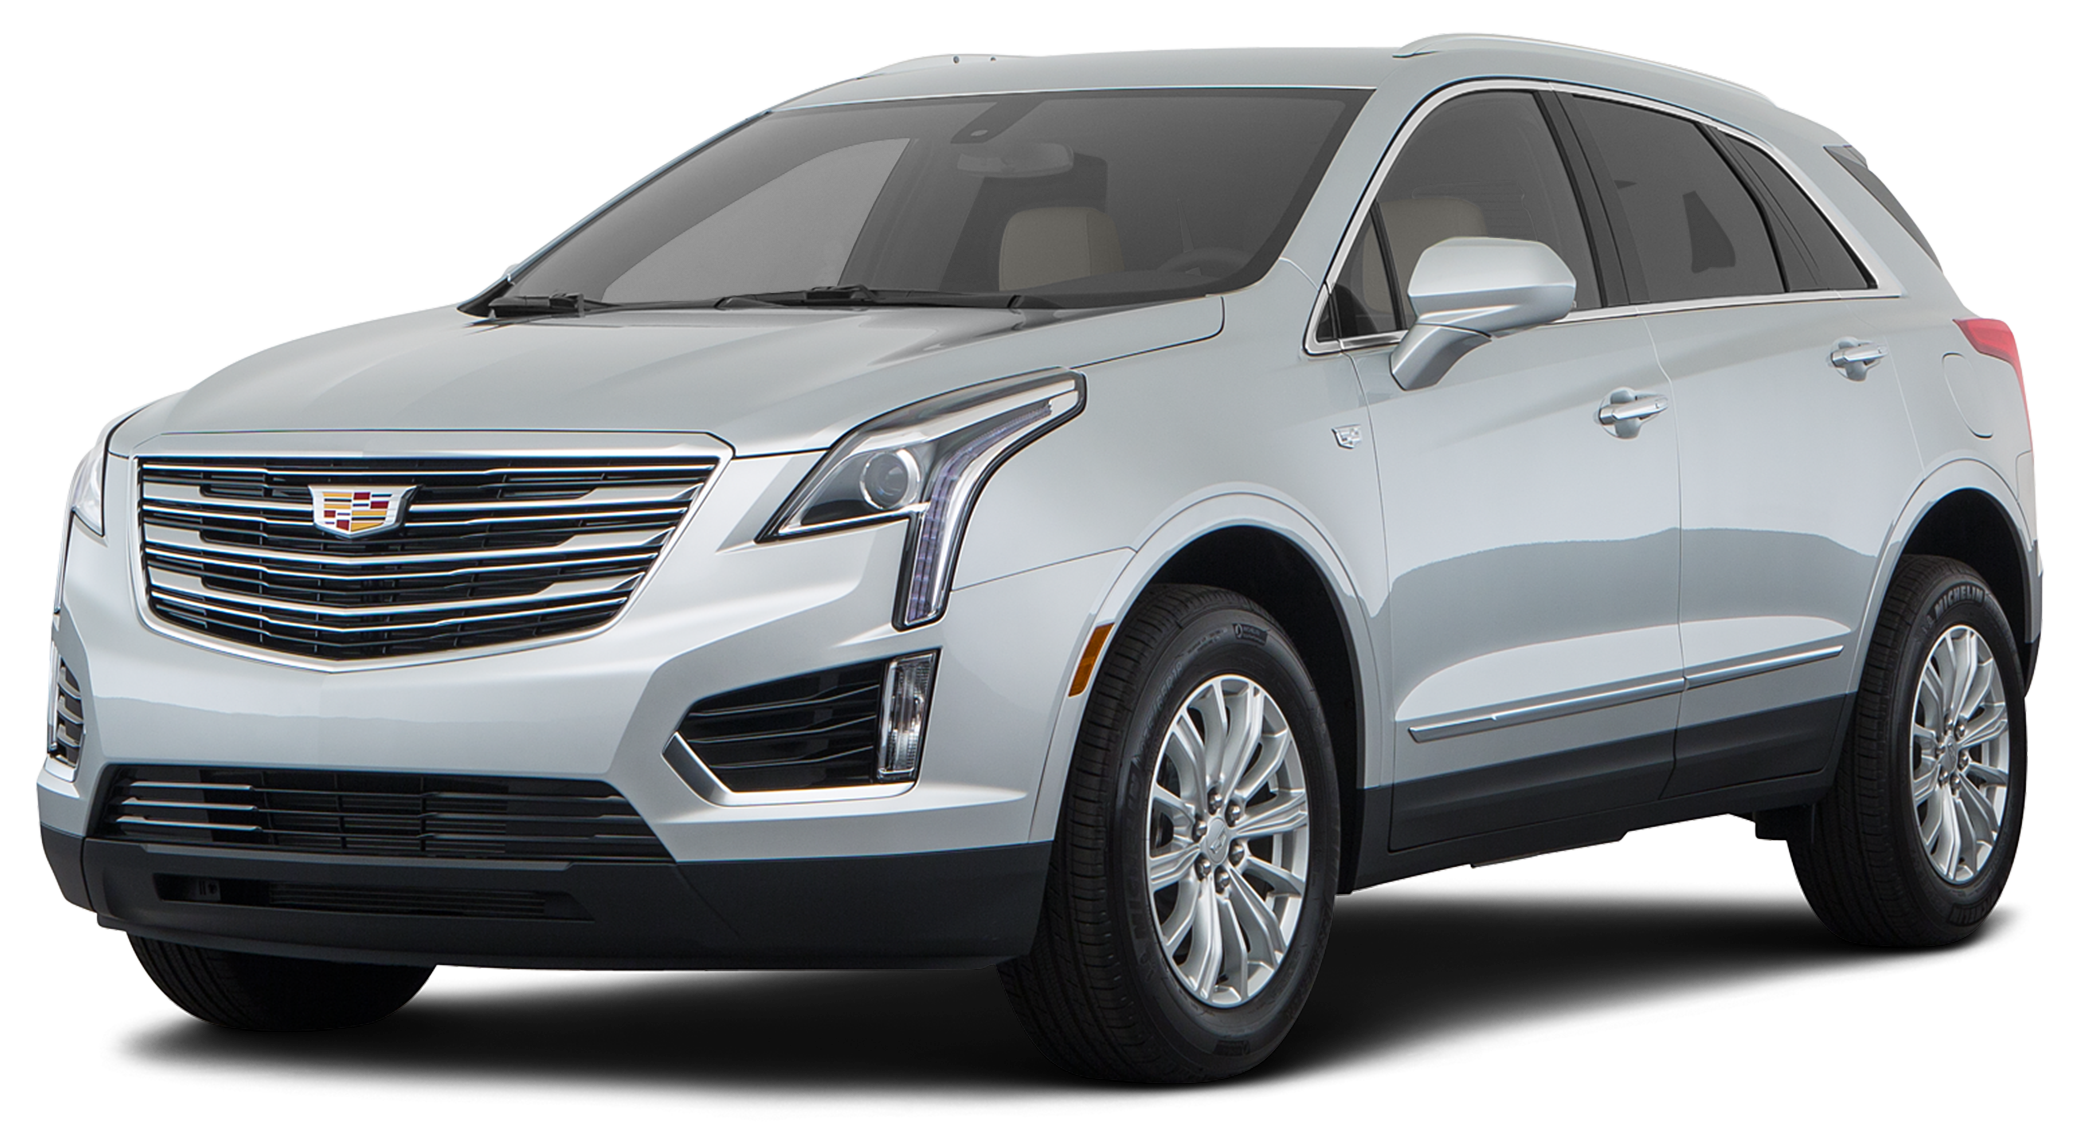 2019 CADILLAC XT5 Incentives Specials & fers in Wilkes Barre PA